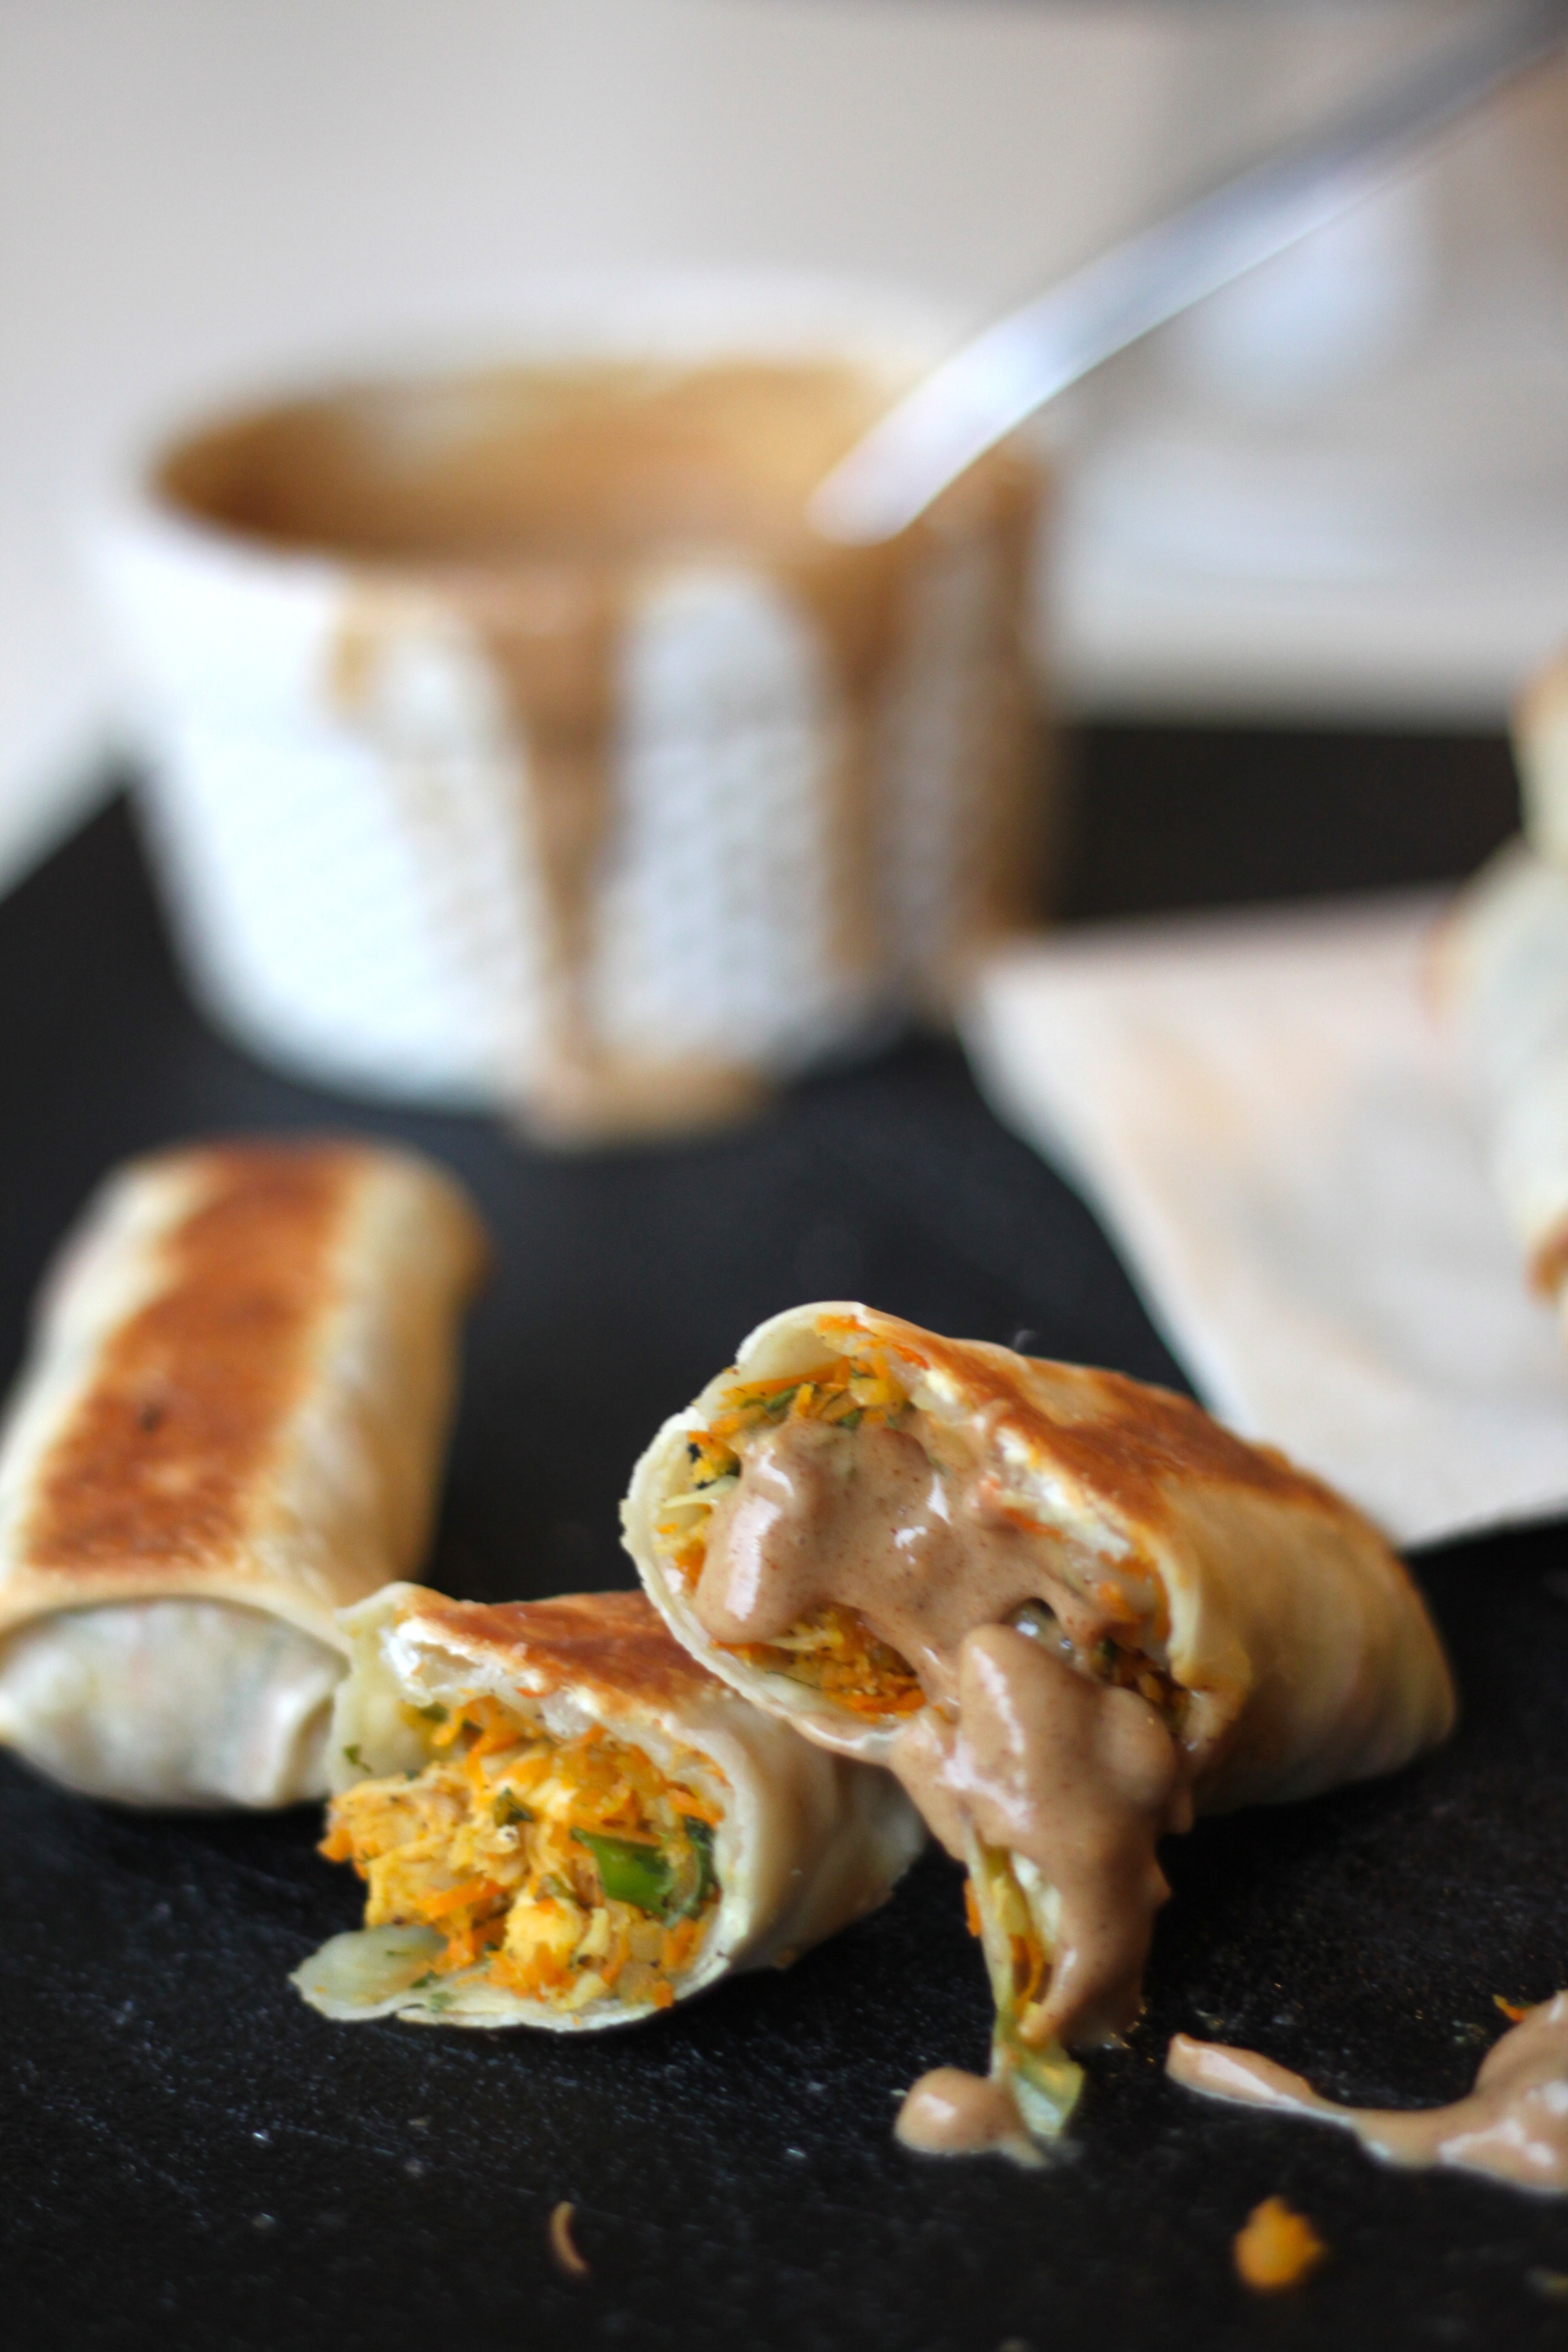 IChicken Spring Rolls with Crunchy Almond Butter Dipping Sauce from The Diva Dish